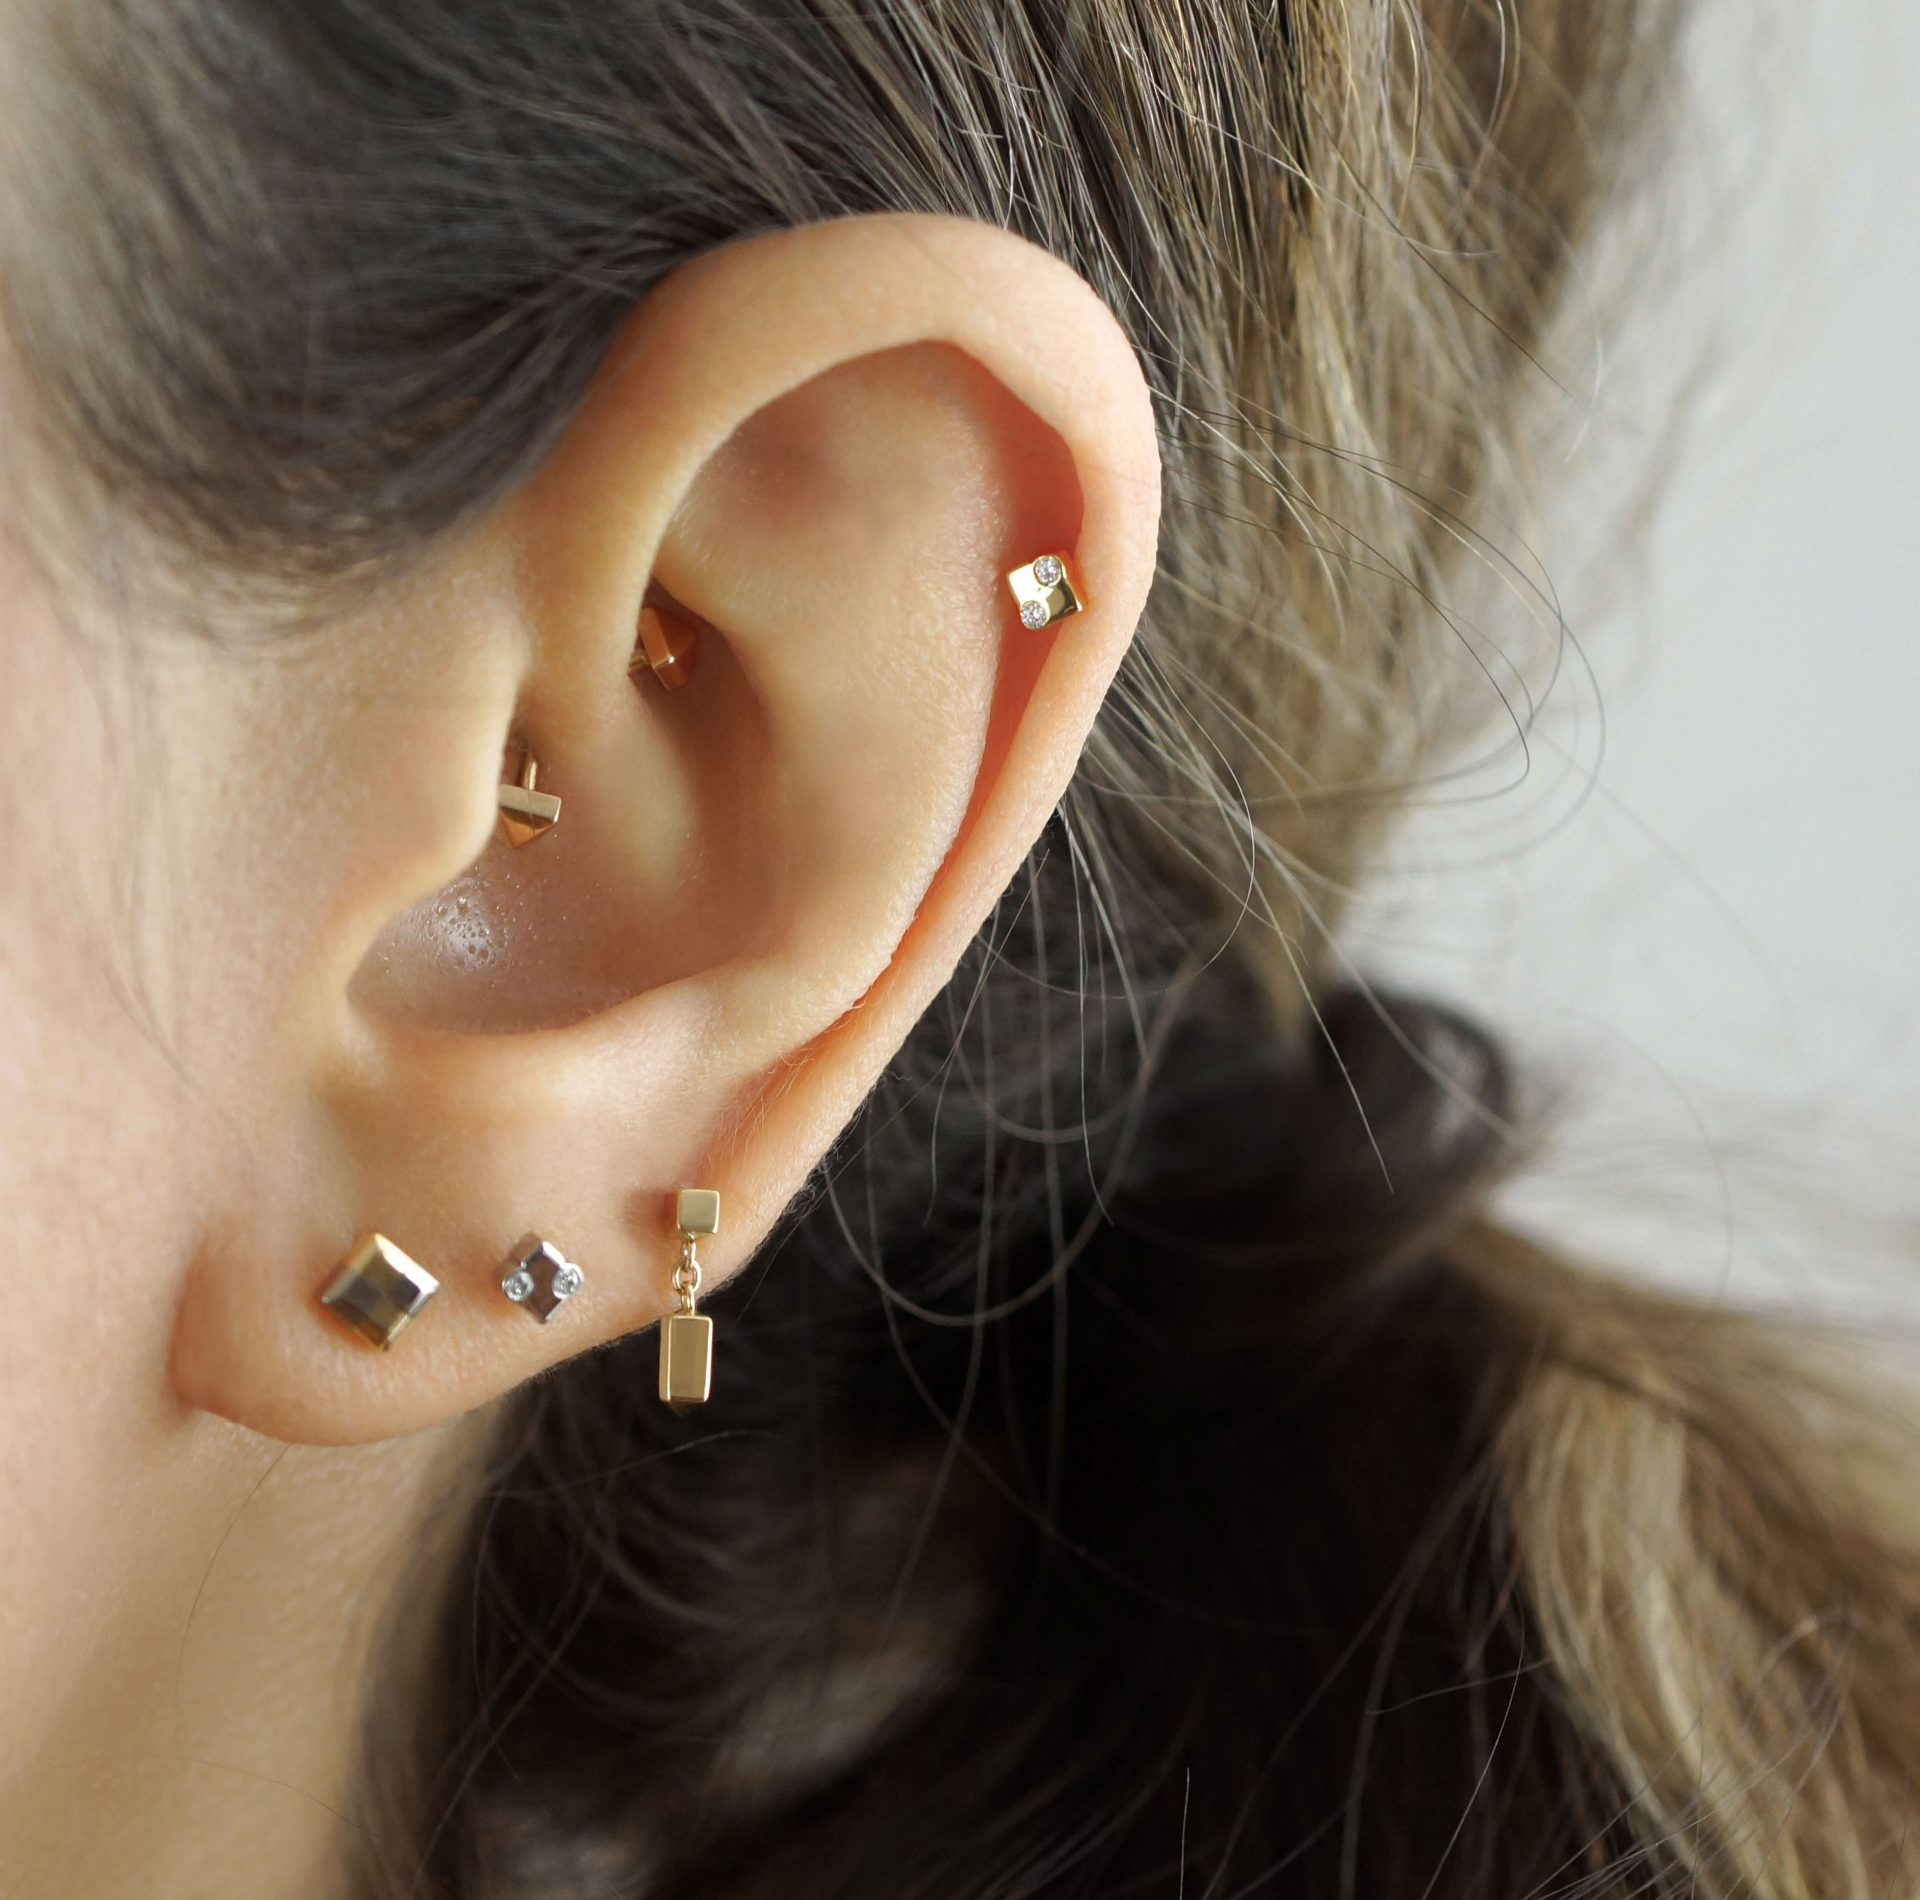 Minimalistic geometric luxury screw back cartilage earring by British designer Lena Cohen.